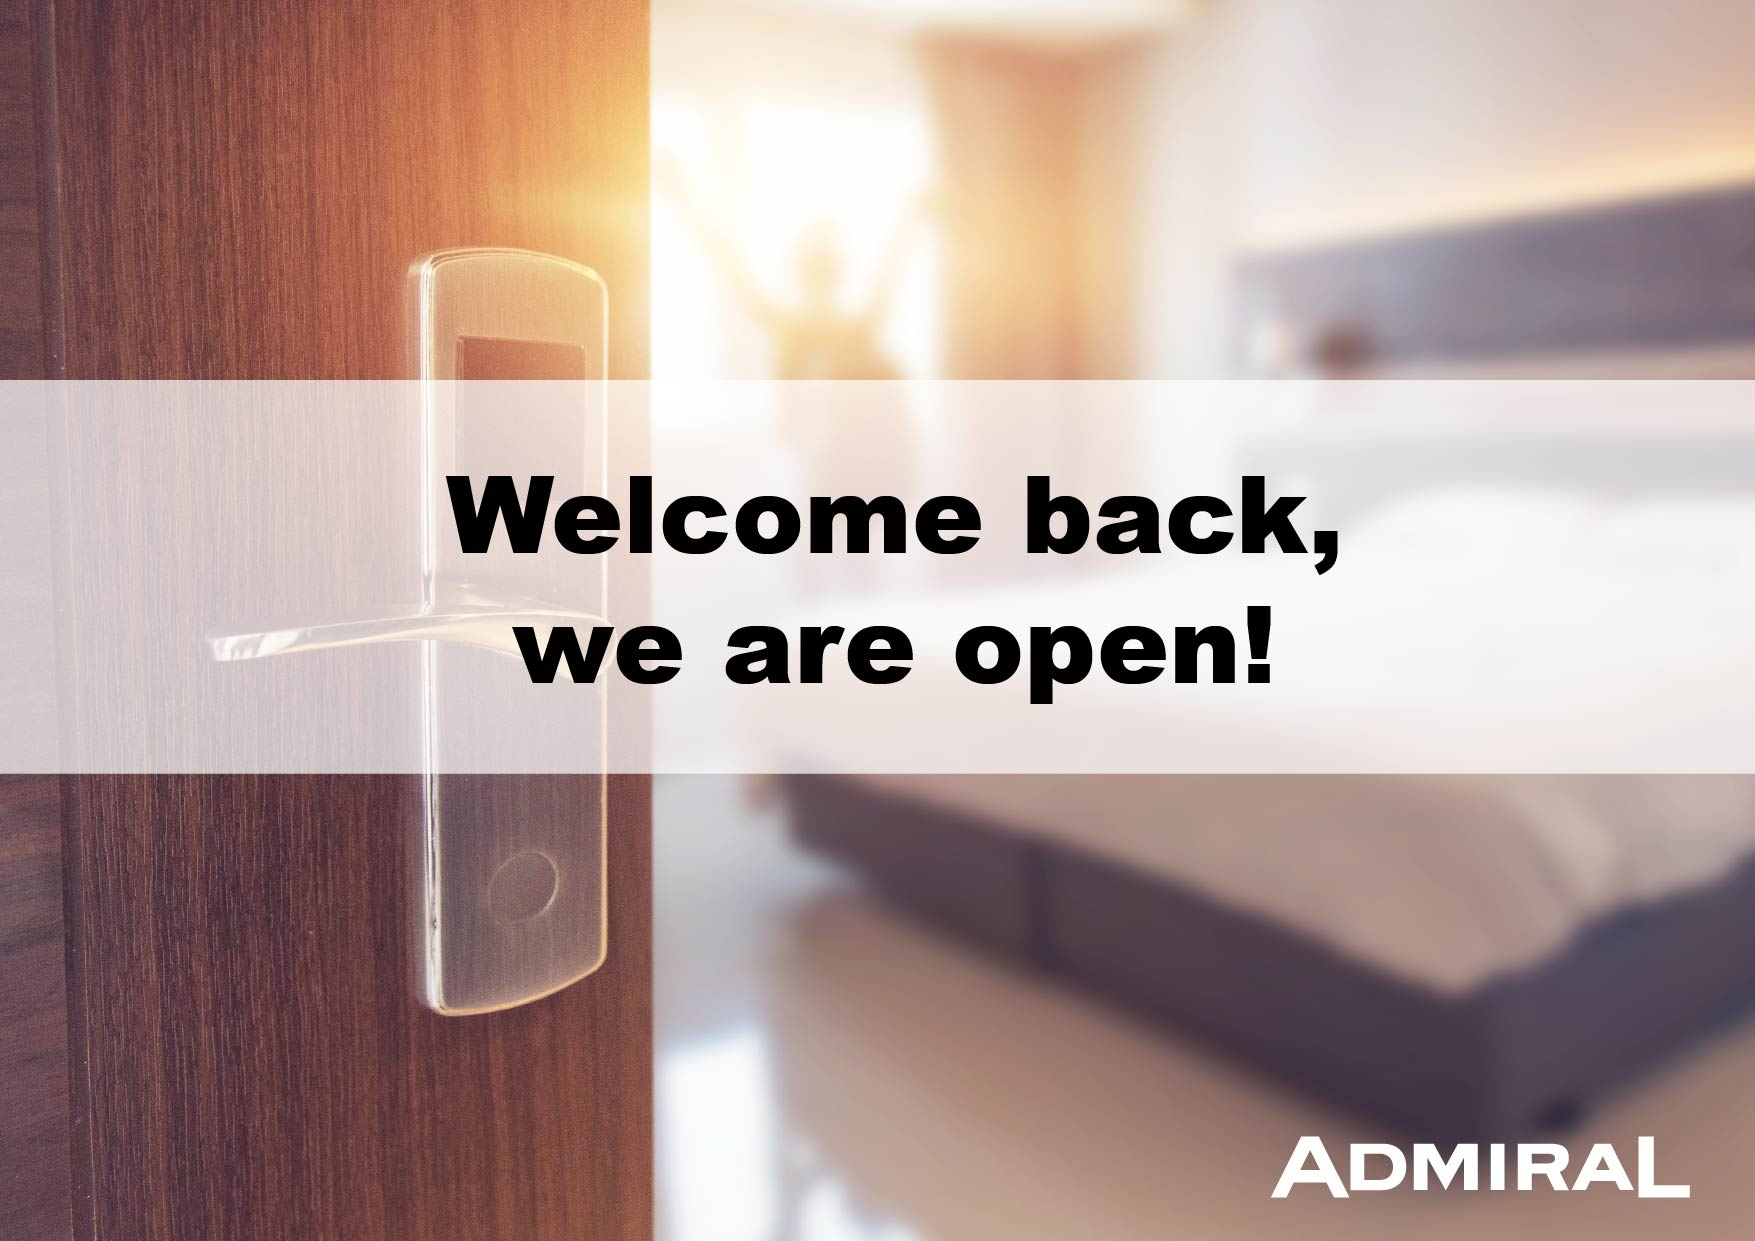 Welcome back, we are open!